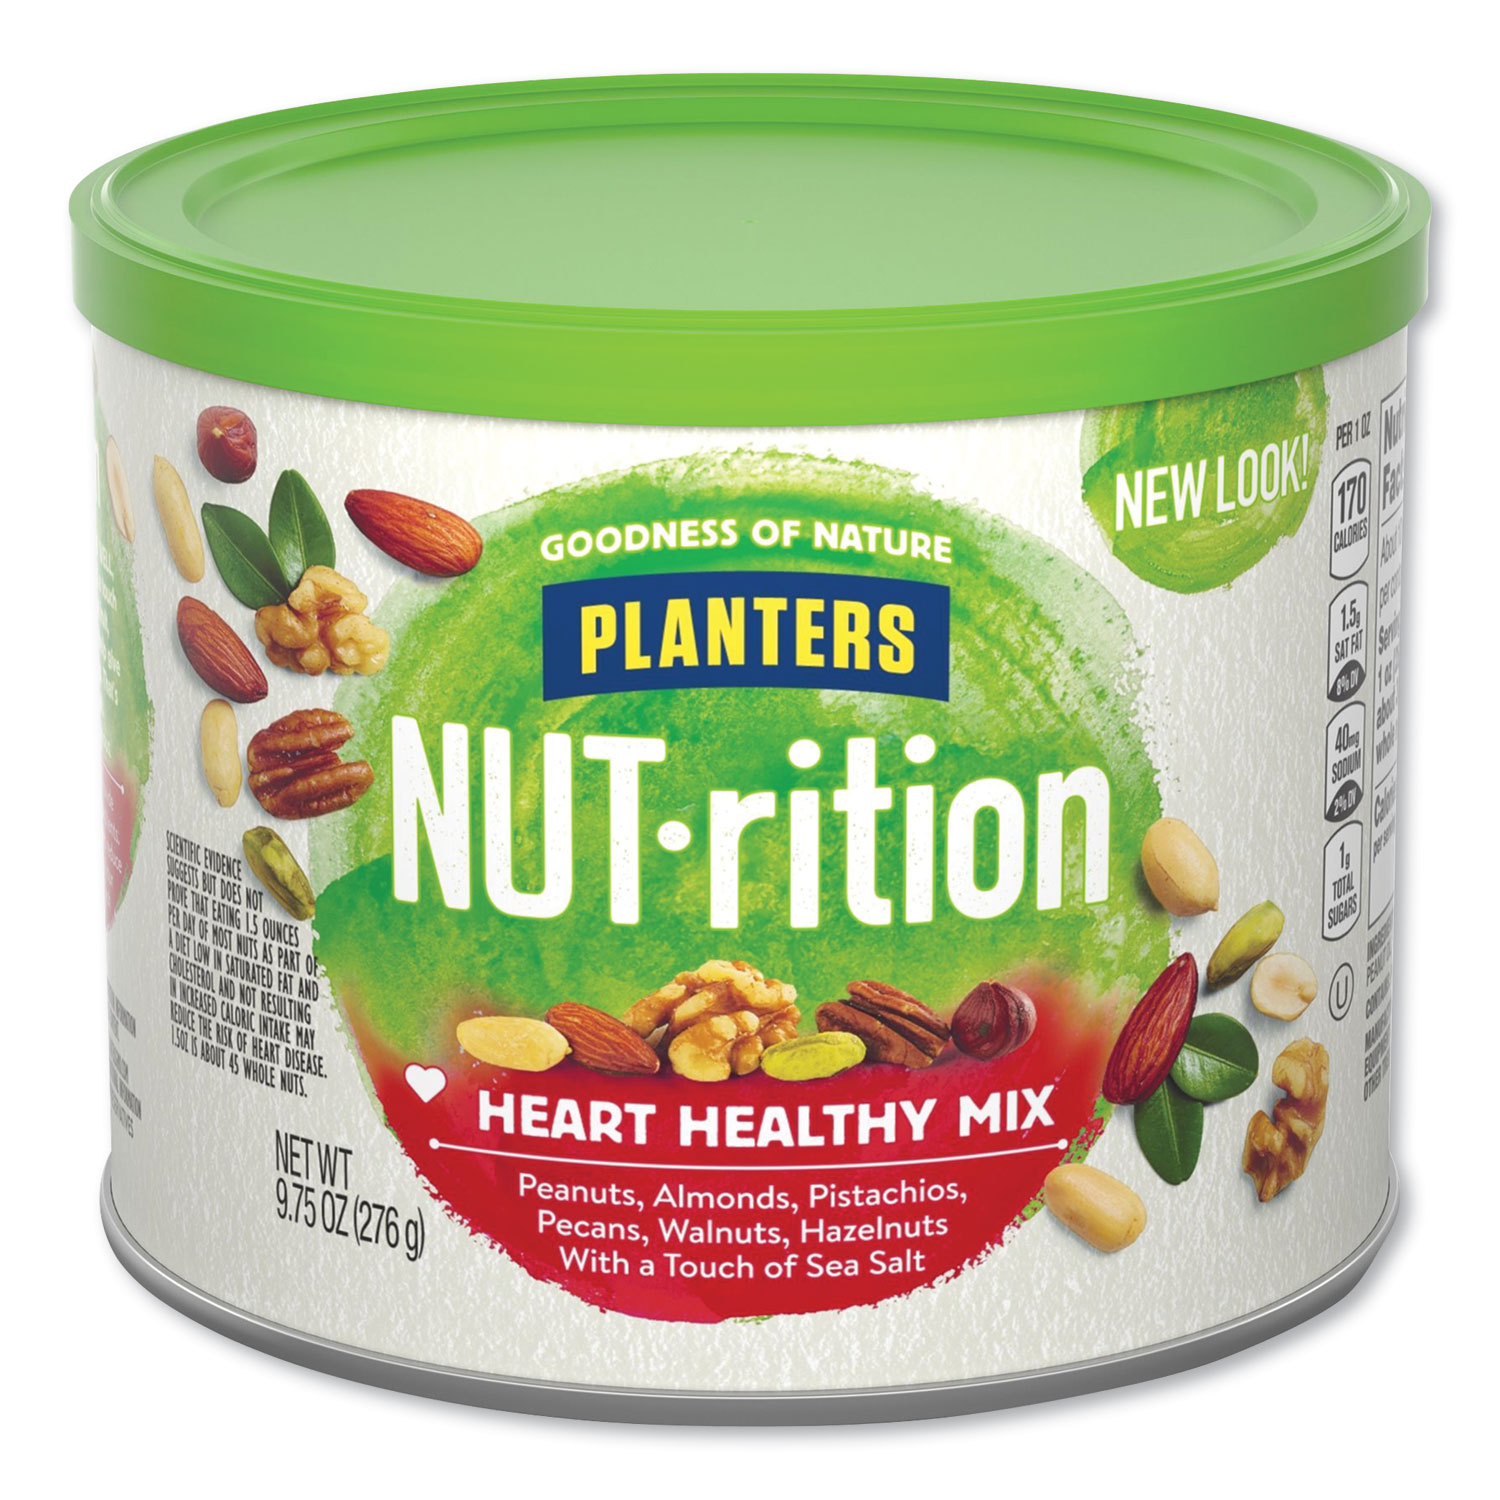 Picture of NUT-rition Heart Healthy Mix, 9.75 oz Can